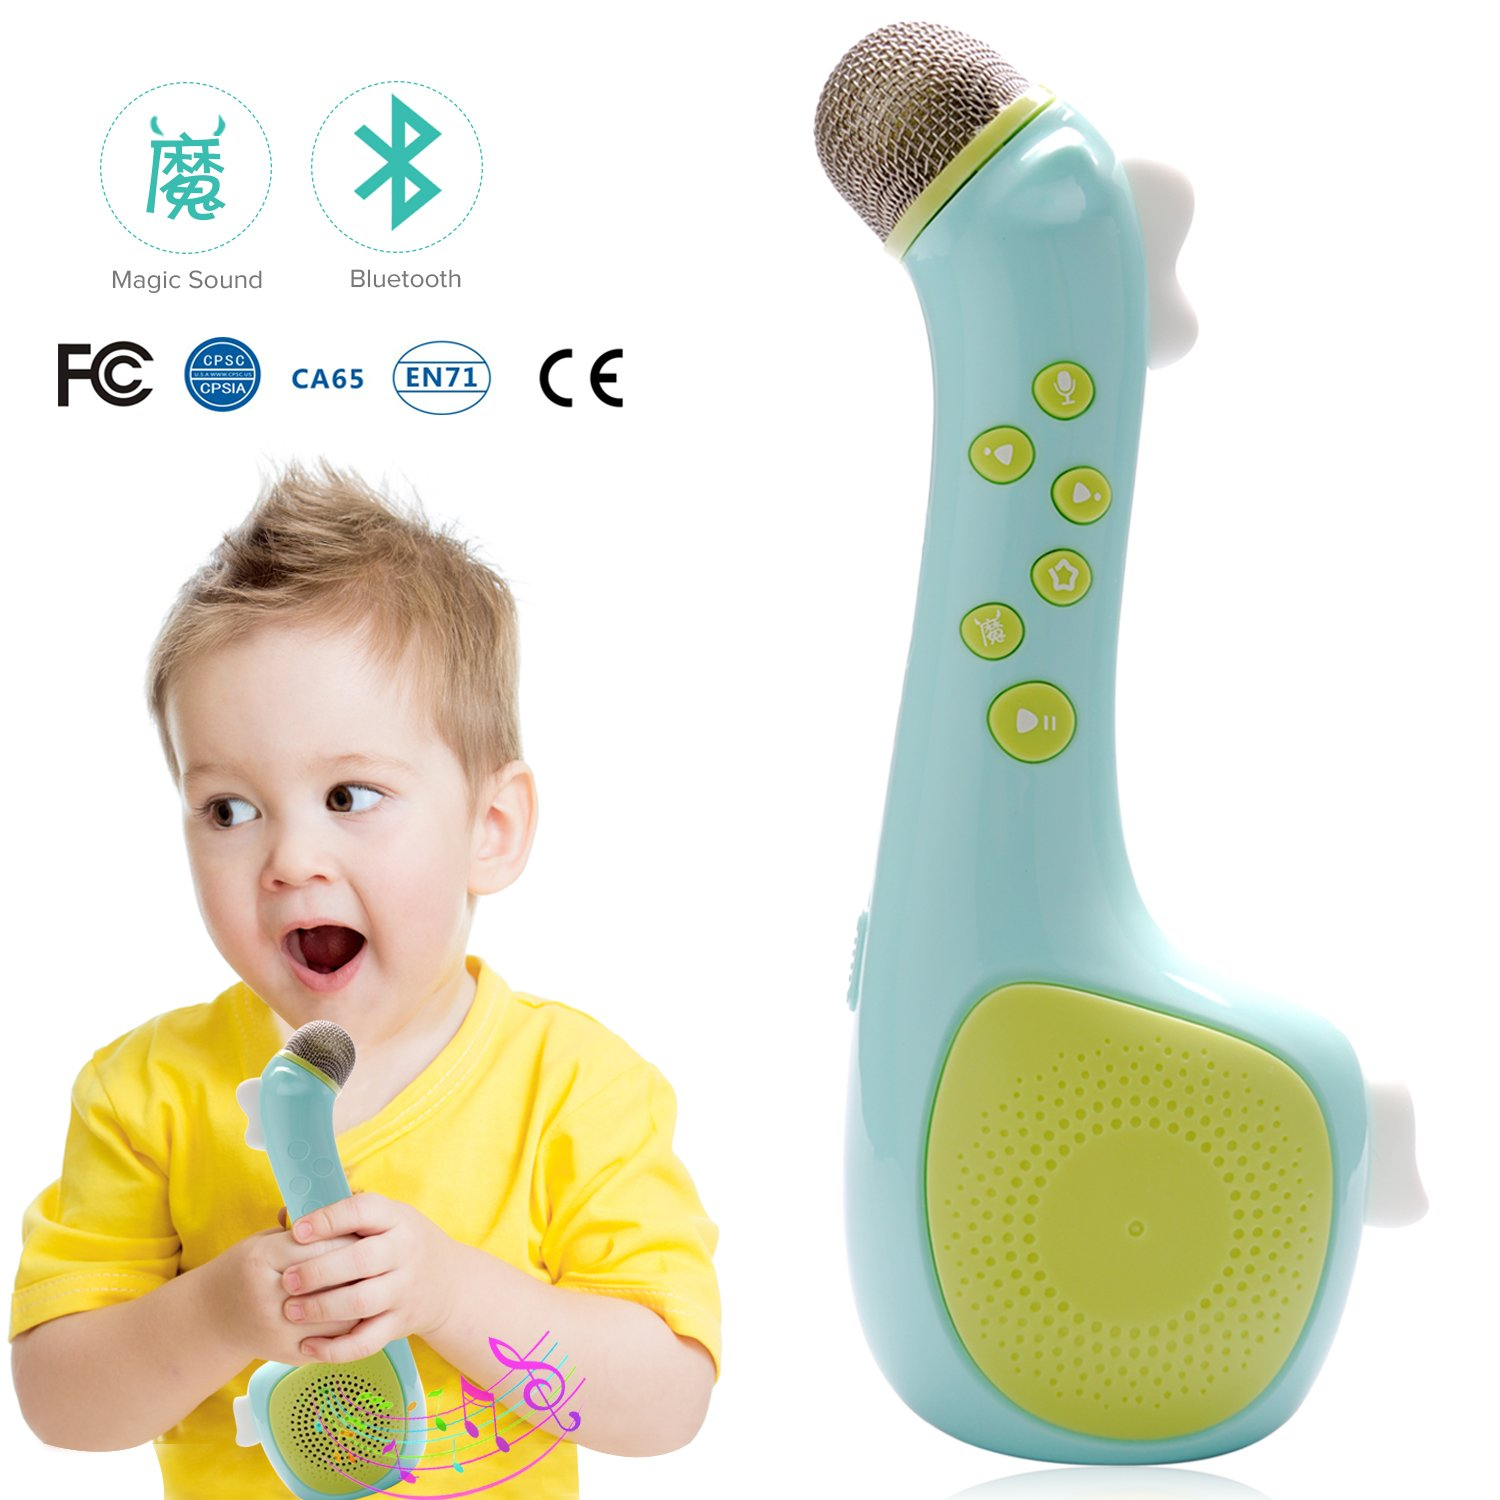 Kids Magic Microphone Speaker with Voice changing and recording by Termichy (Blue)